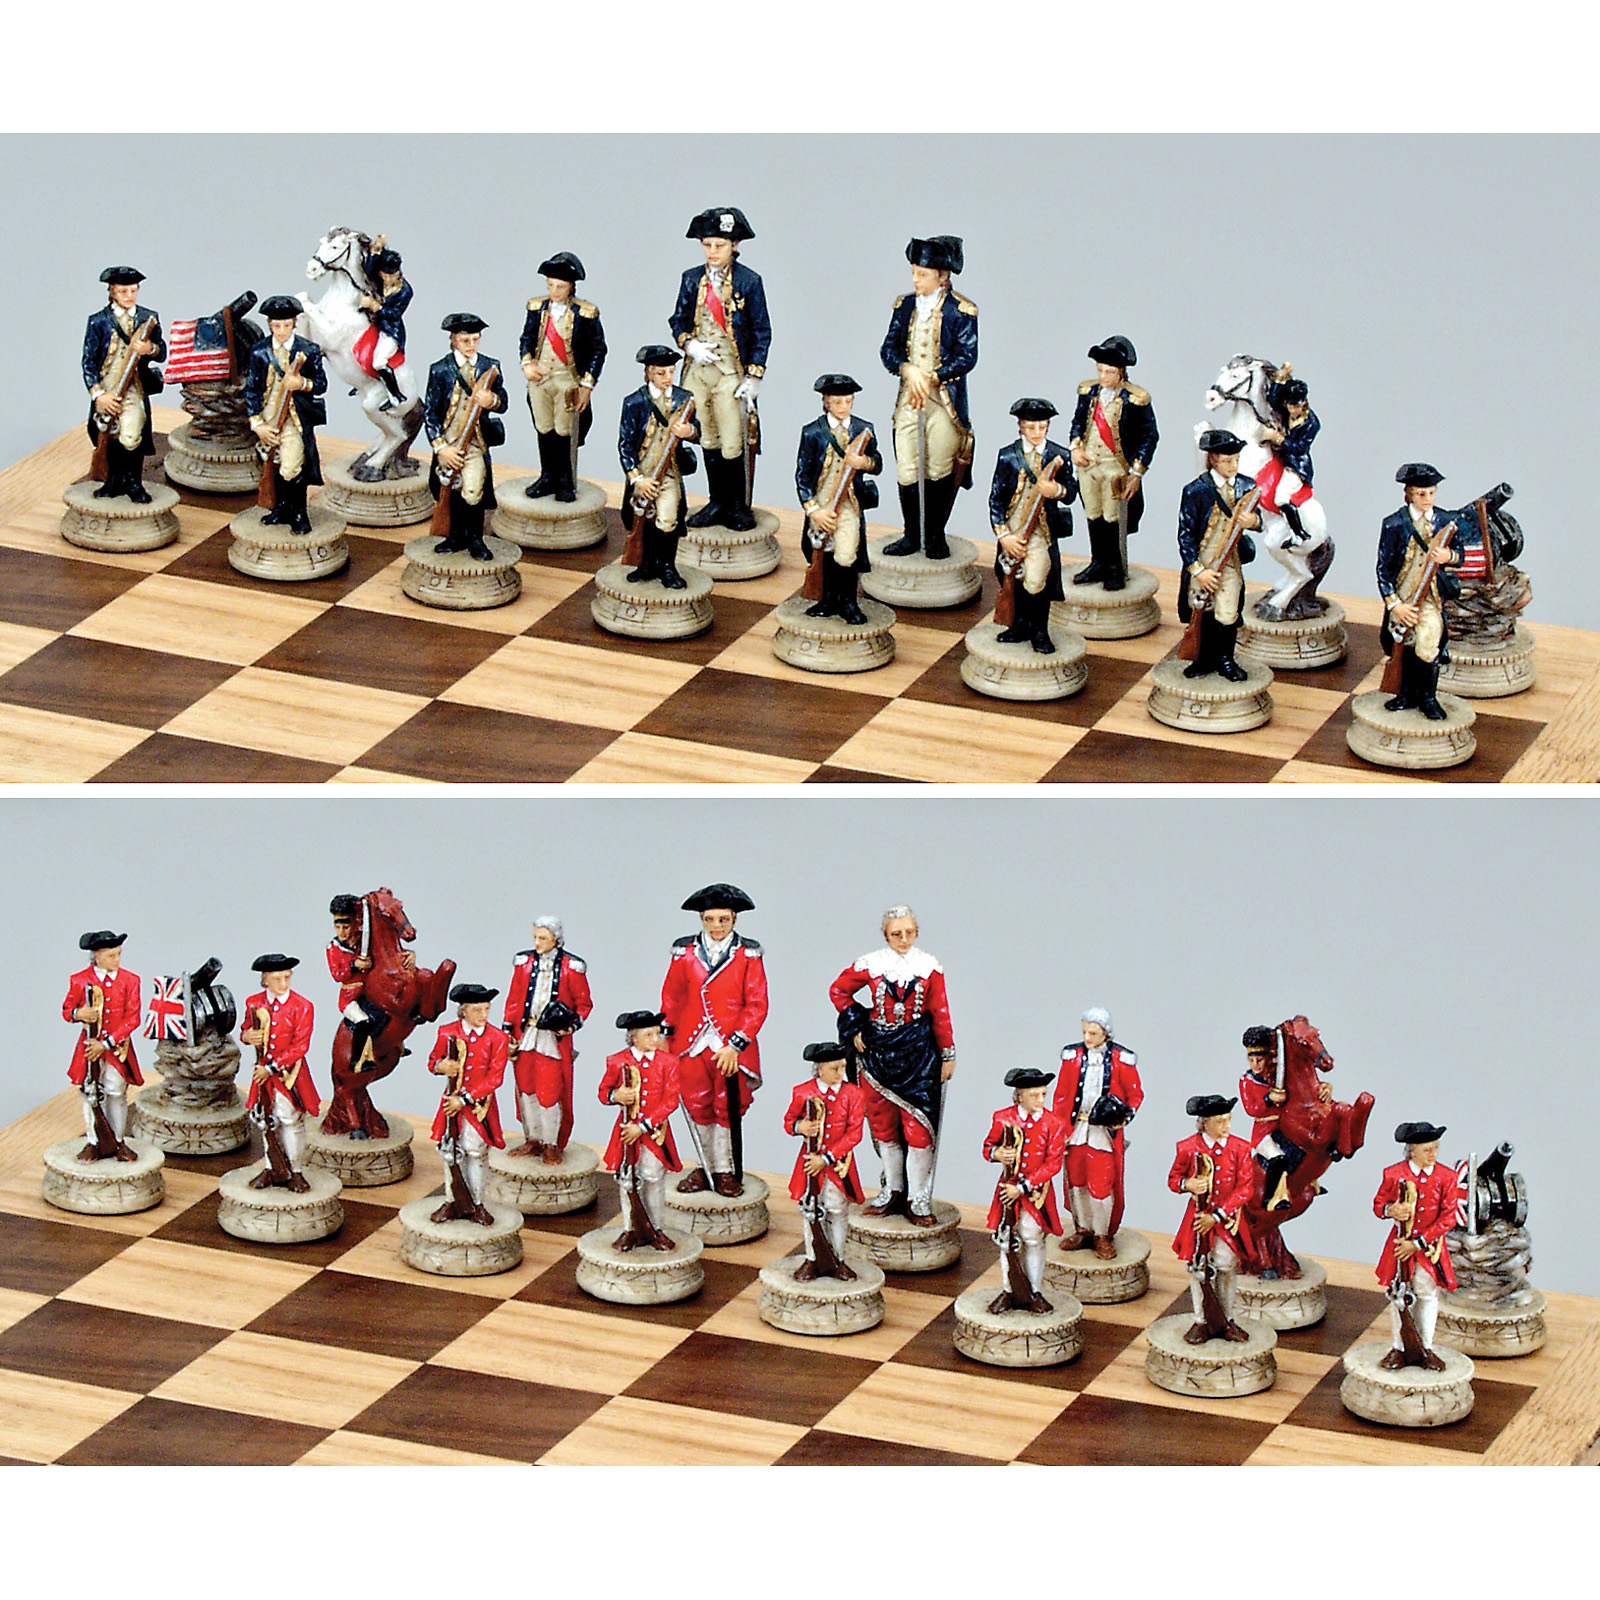 Large Revolutionary War Chess Set At Hayneedle